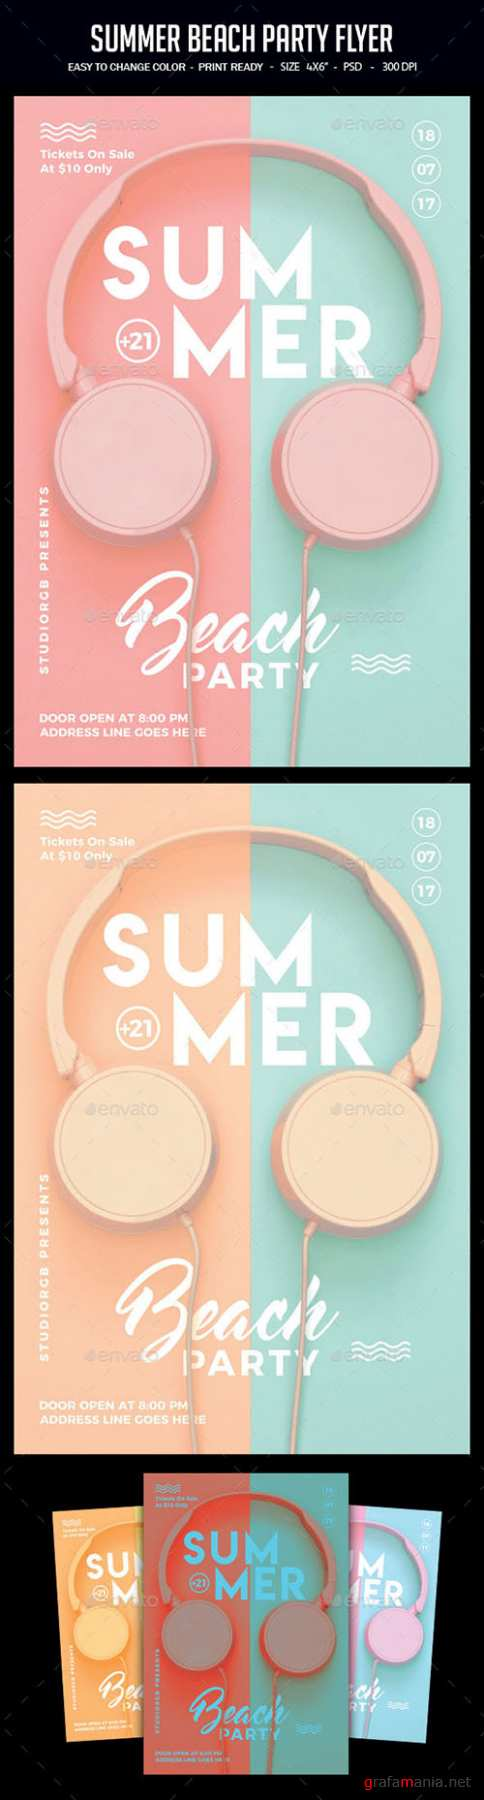 GR - Summer Beach Party Flyer 22218525